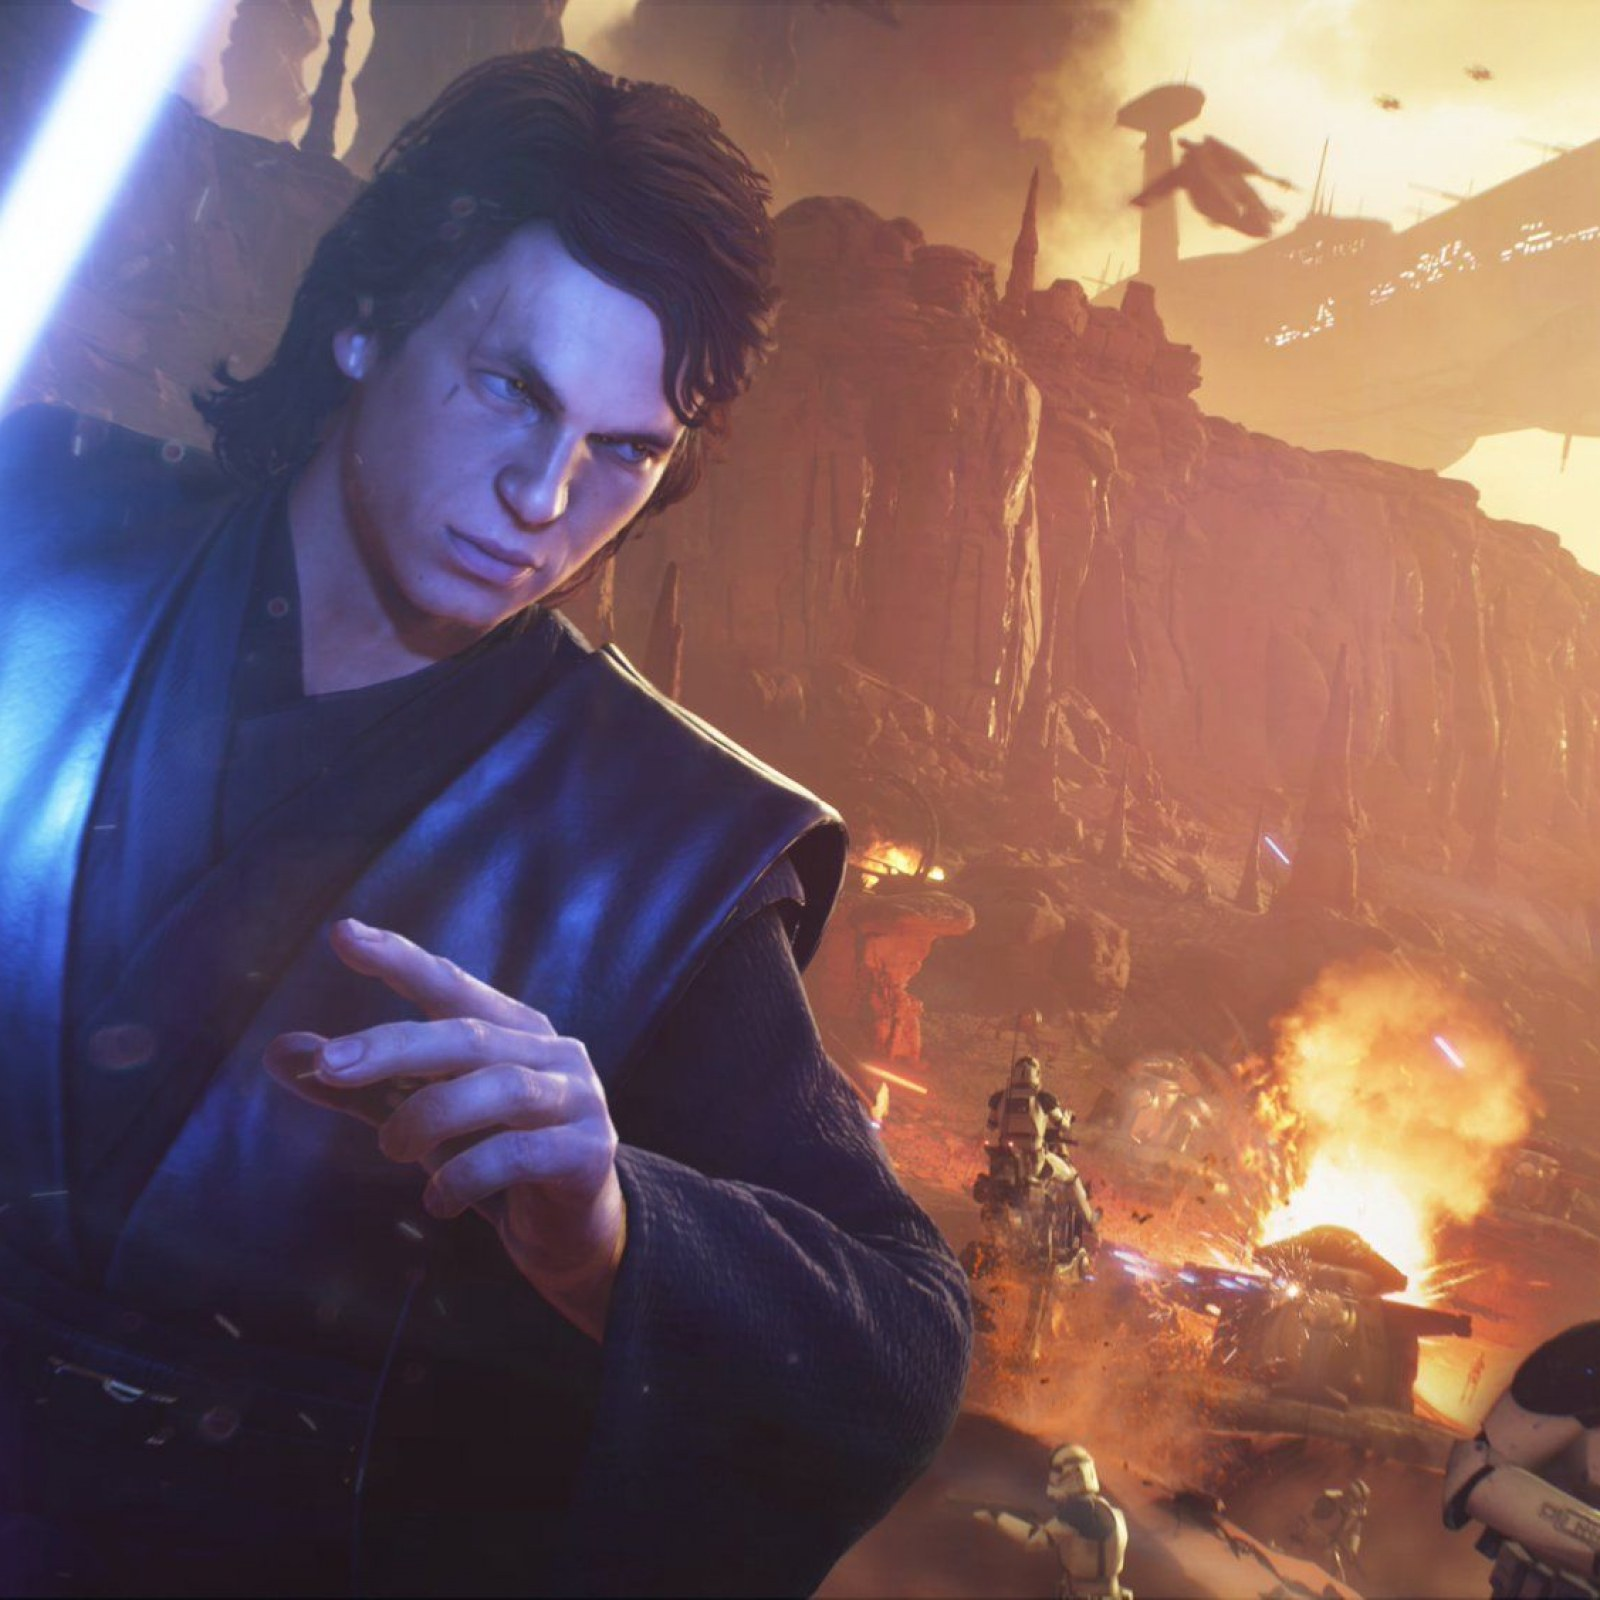 Star Wars Battlefront 2' Update 1 28 Adds Capital Supremacy - Patch